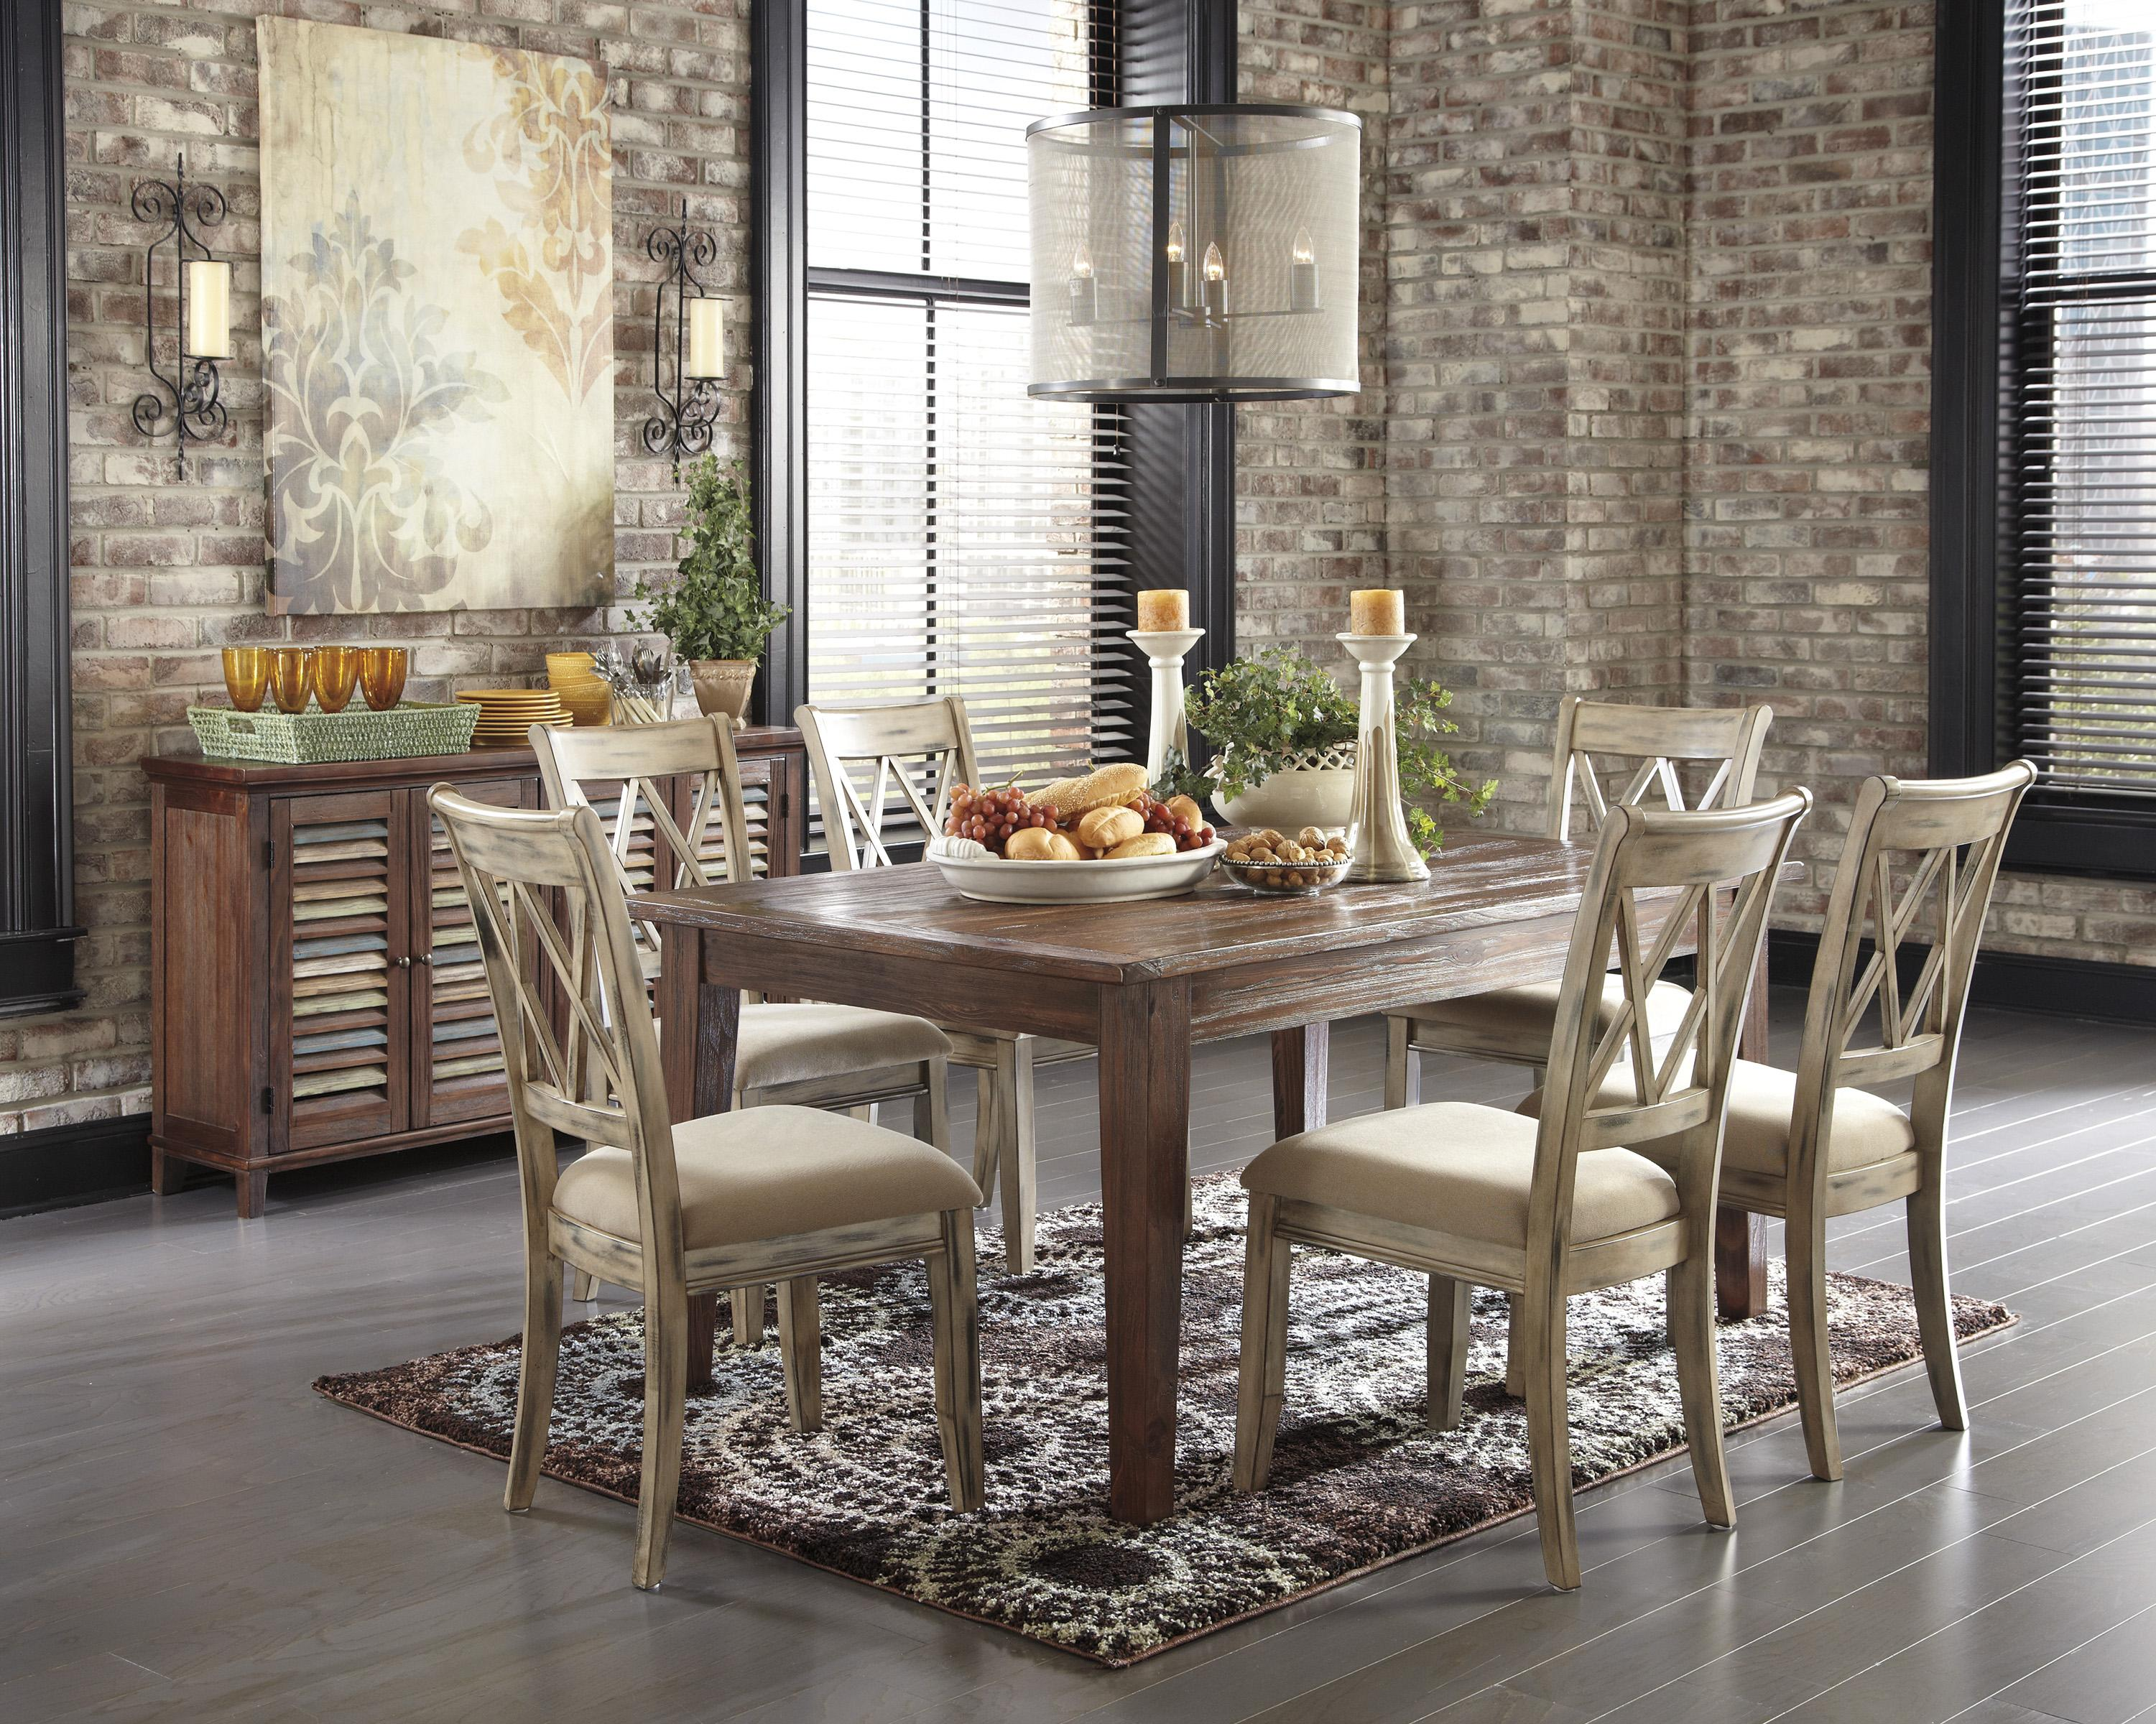 Signature Design by Ashley Mestler Casual Dining Room Group - Item Number: D540 Dining Room Group 3